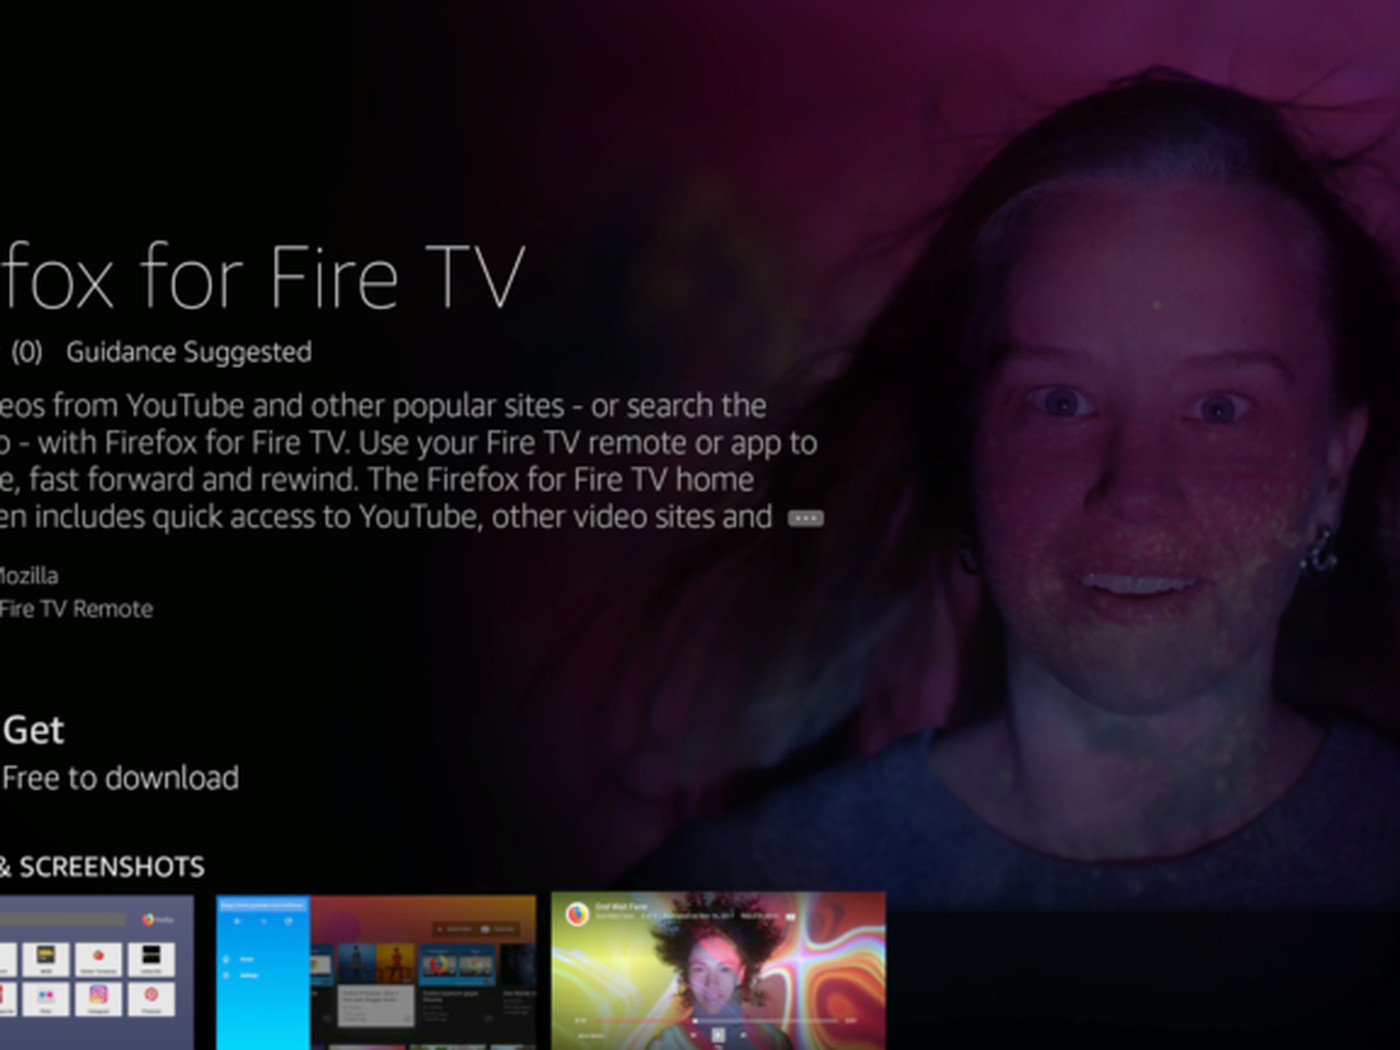 Firefox is now available on Amazon's Fire TV, and it can